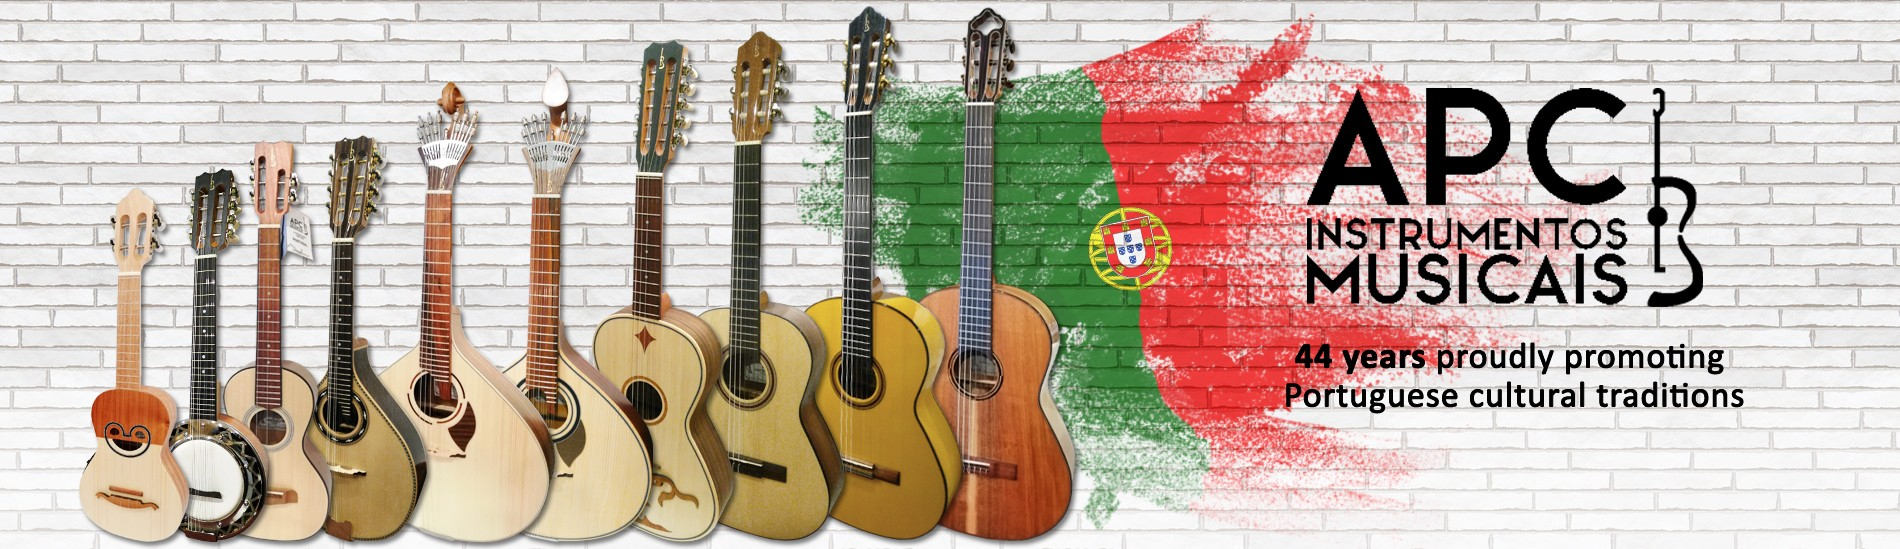 APC - Instrumentos Musicais - 44 years proudly promoting Portuguese cultural traditions